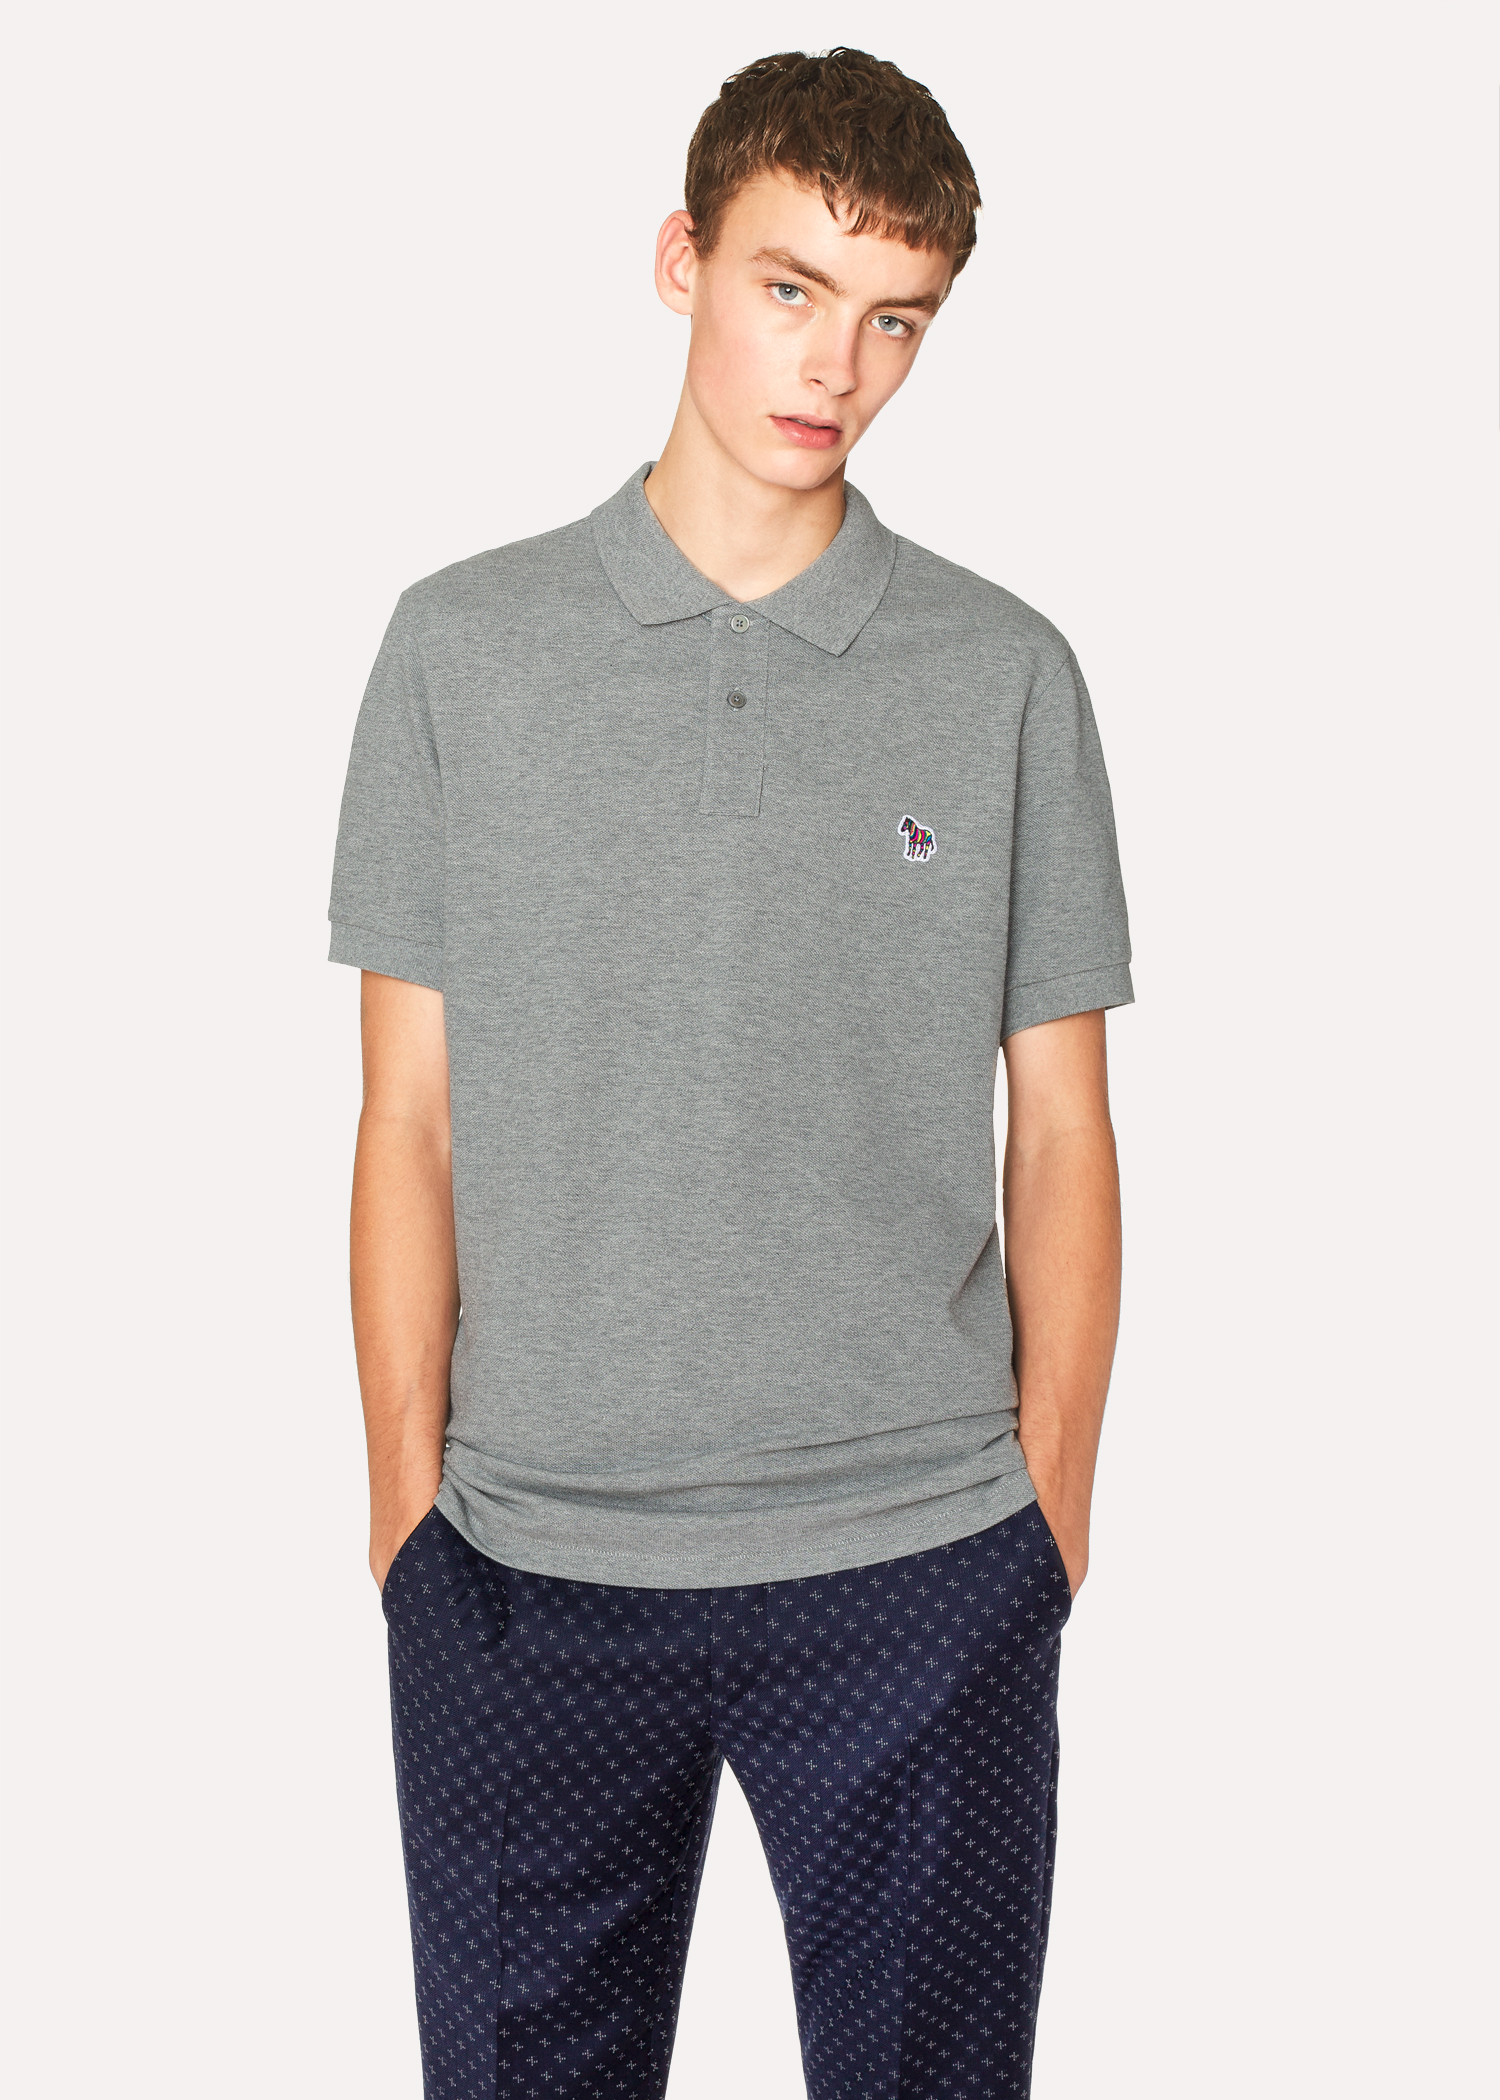 295d6432 Men's Grey Marl Cotton-Piqué Zebra Logo Polo Shirt - Paul Smith ...